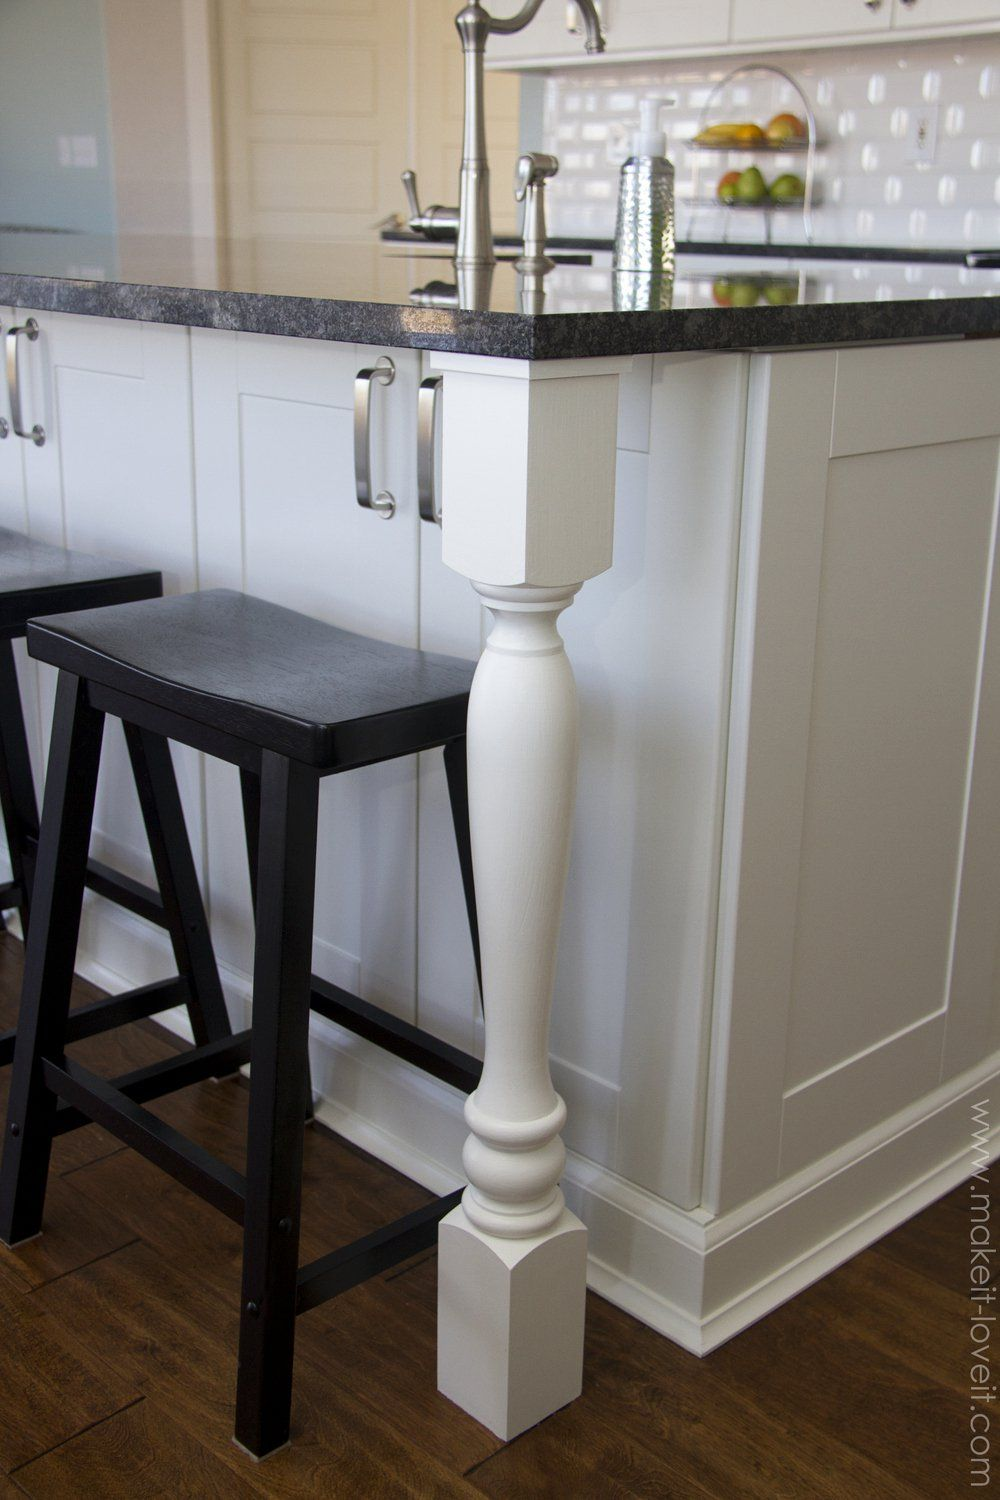 Home Improvement Adding Column Supports To Counter Overhang Plus Finished Kitchen Photos Stylish Kitchen Island Backless Bar Stools Kitchen Kitchen Photos